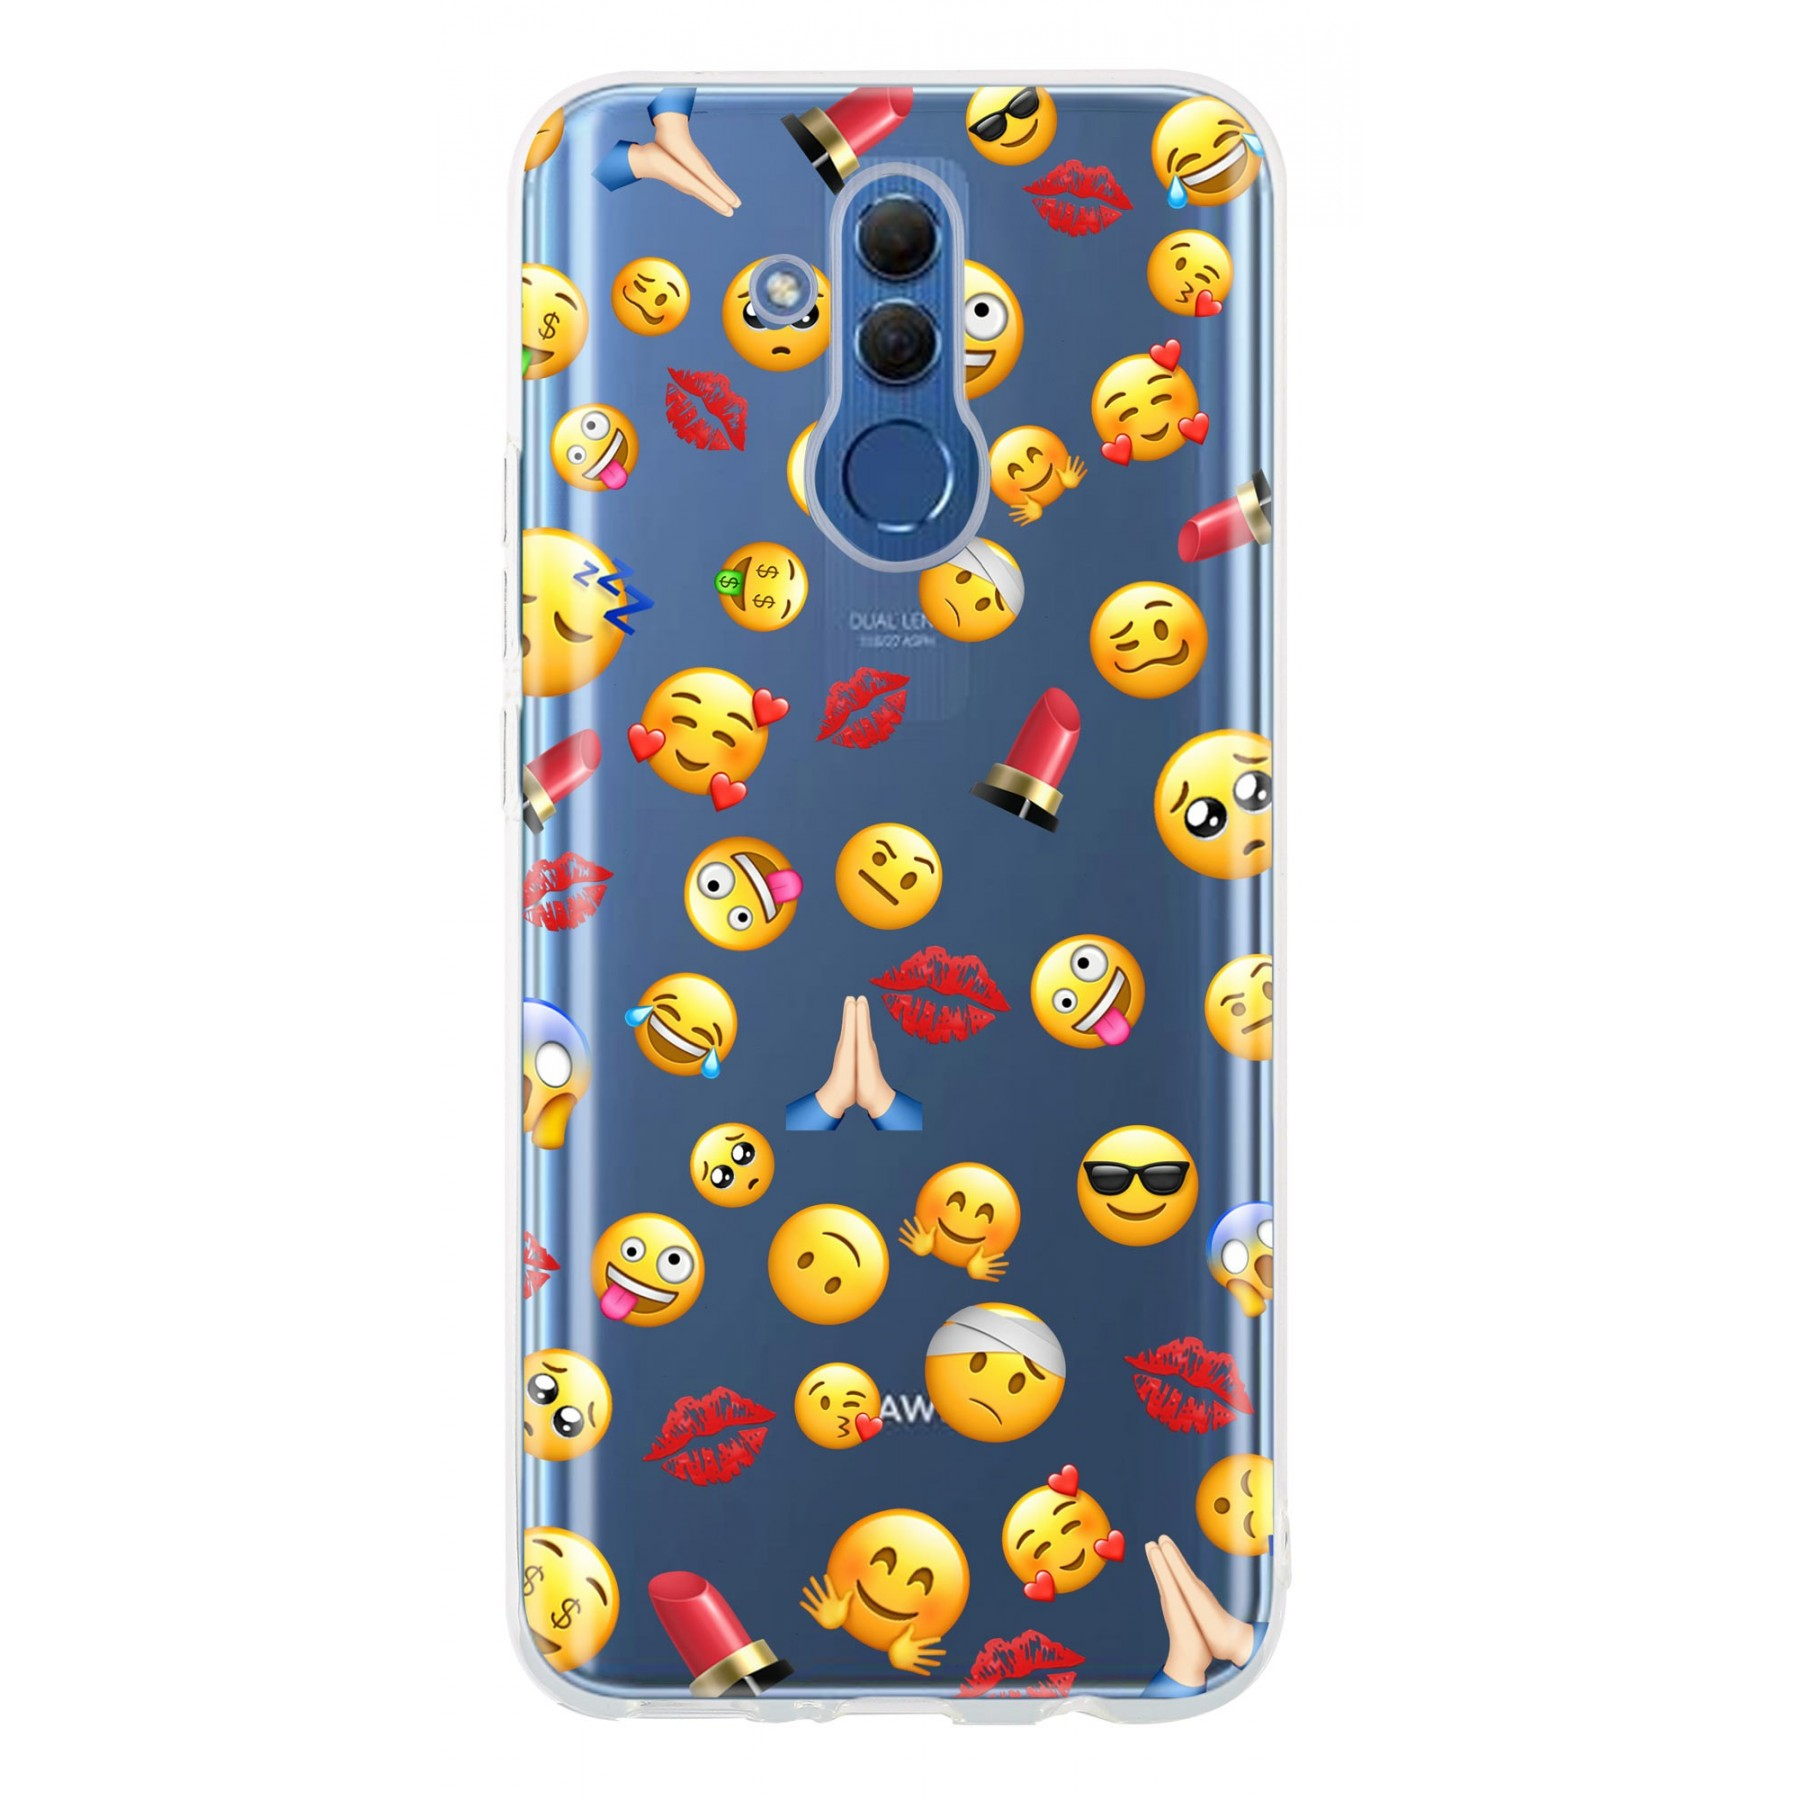 Coque smiley pour Huawei Mate 20 lite